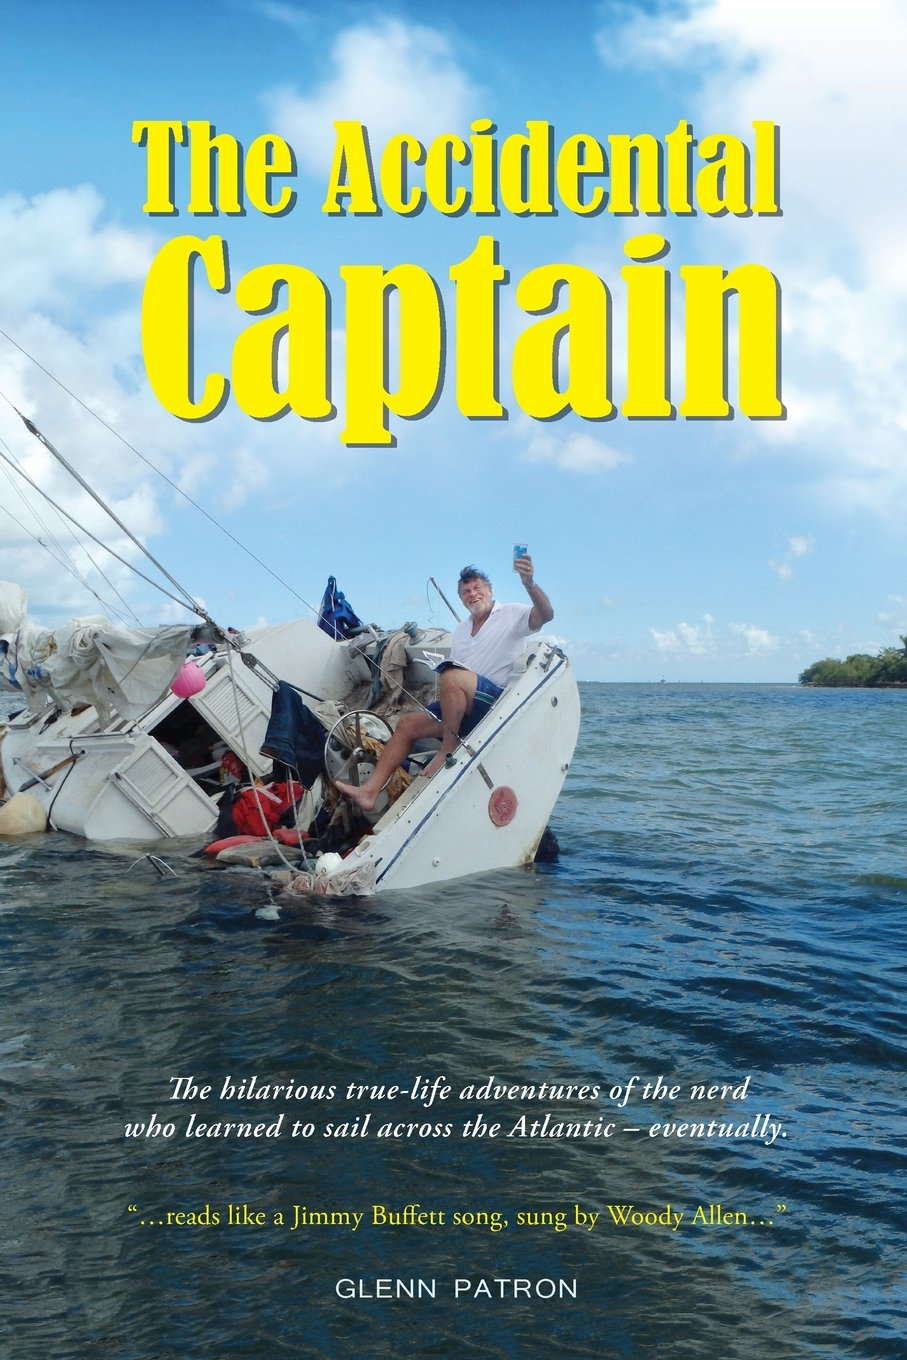 The Accidental Captain: 20 Years of Learning to Sail by Trial and Terror (Tac) pdf epub